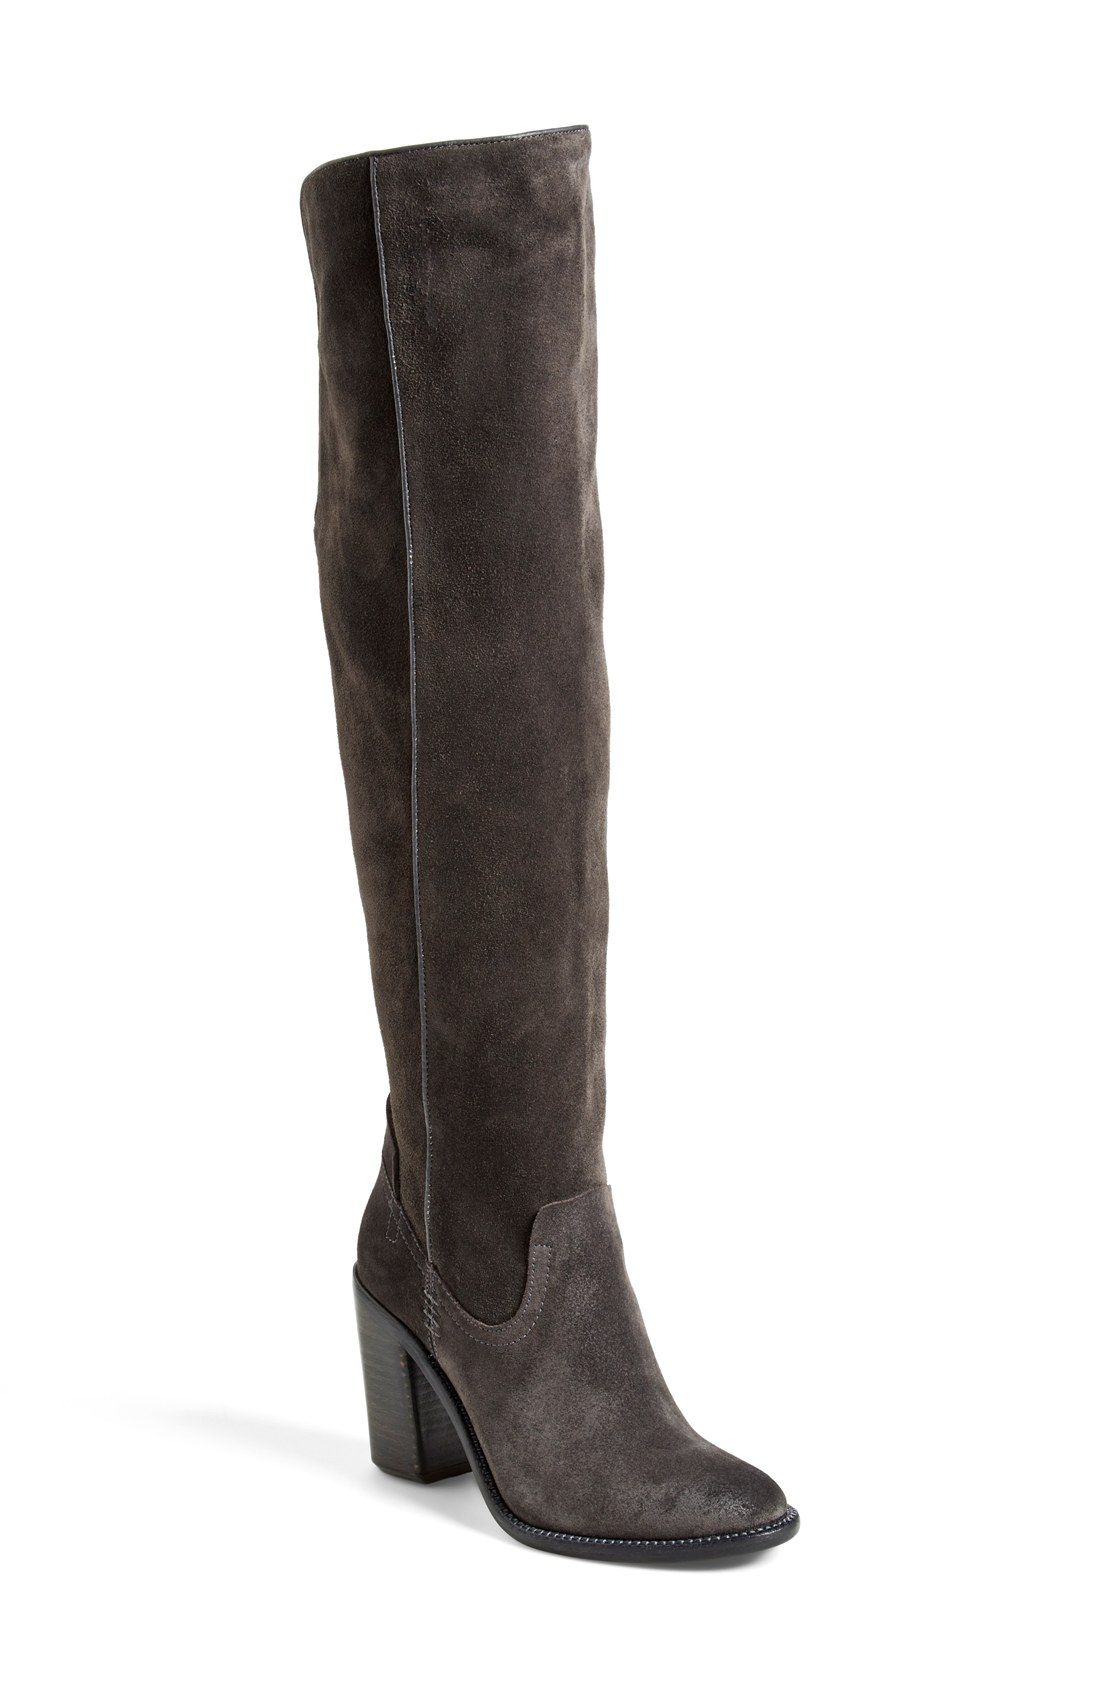 10632d42a4a anthracite suede in size 7.5 gift idea - Dolce Vita  Ohanna  Over the Knee  Boot (Women) (Nordstrom Exclusive)